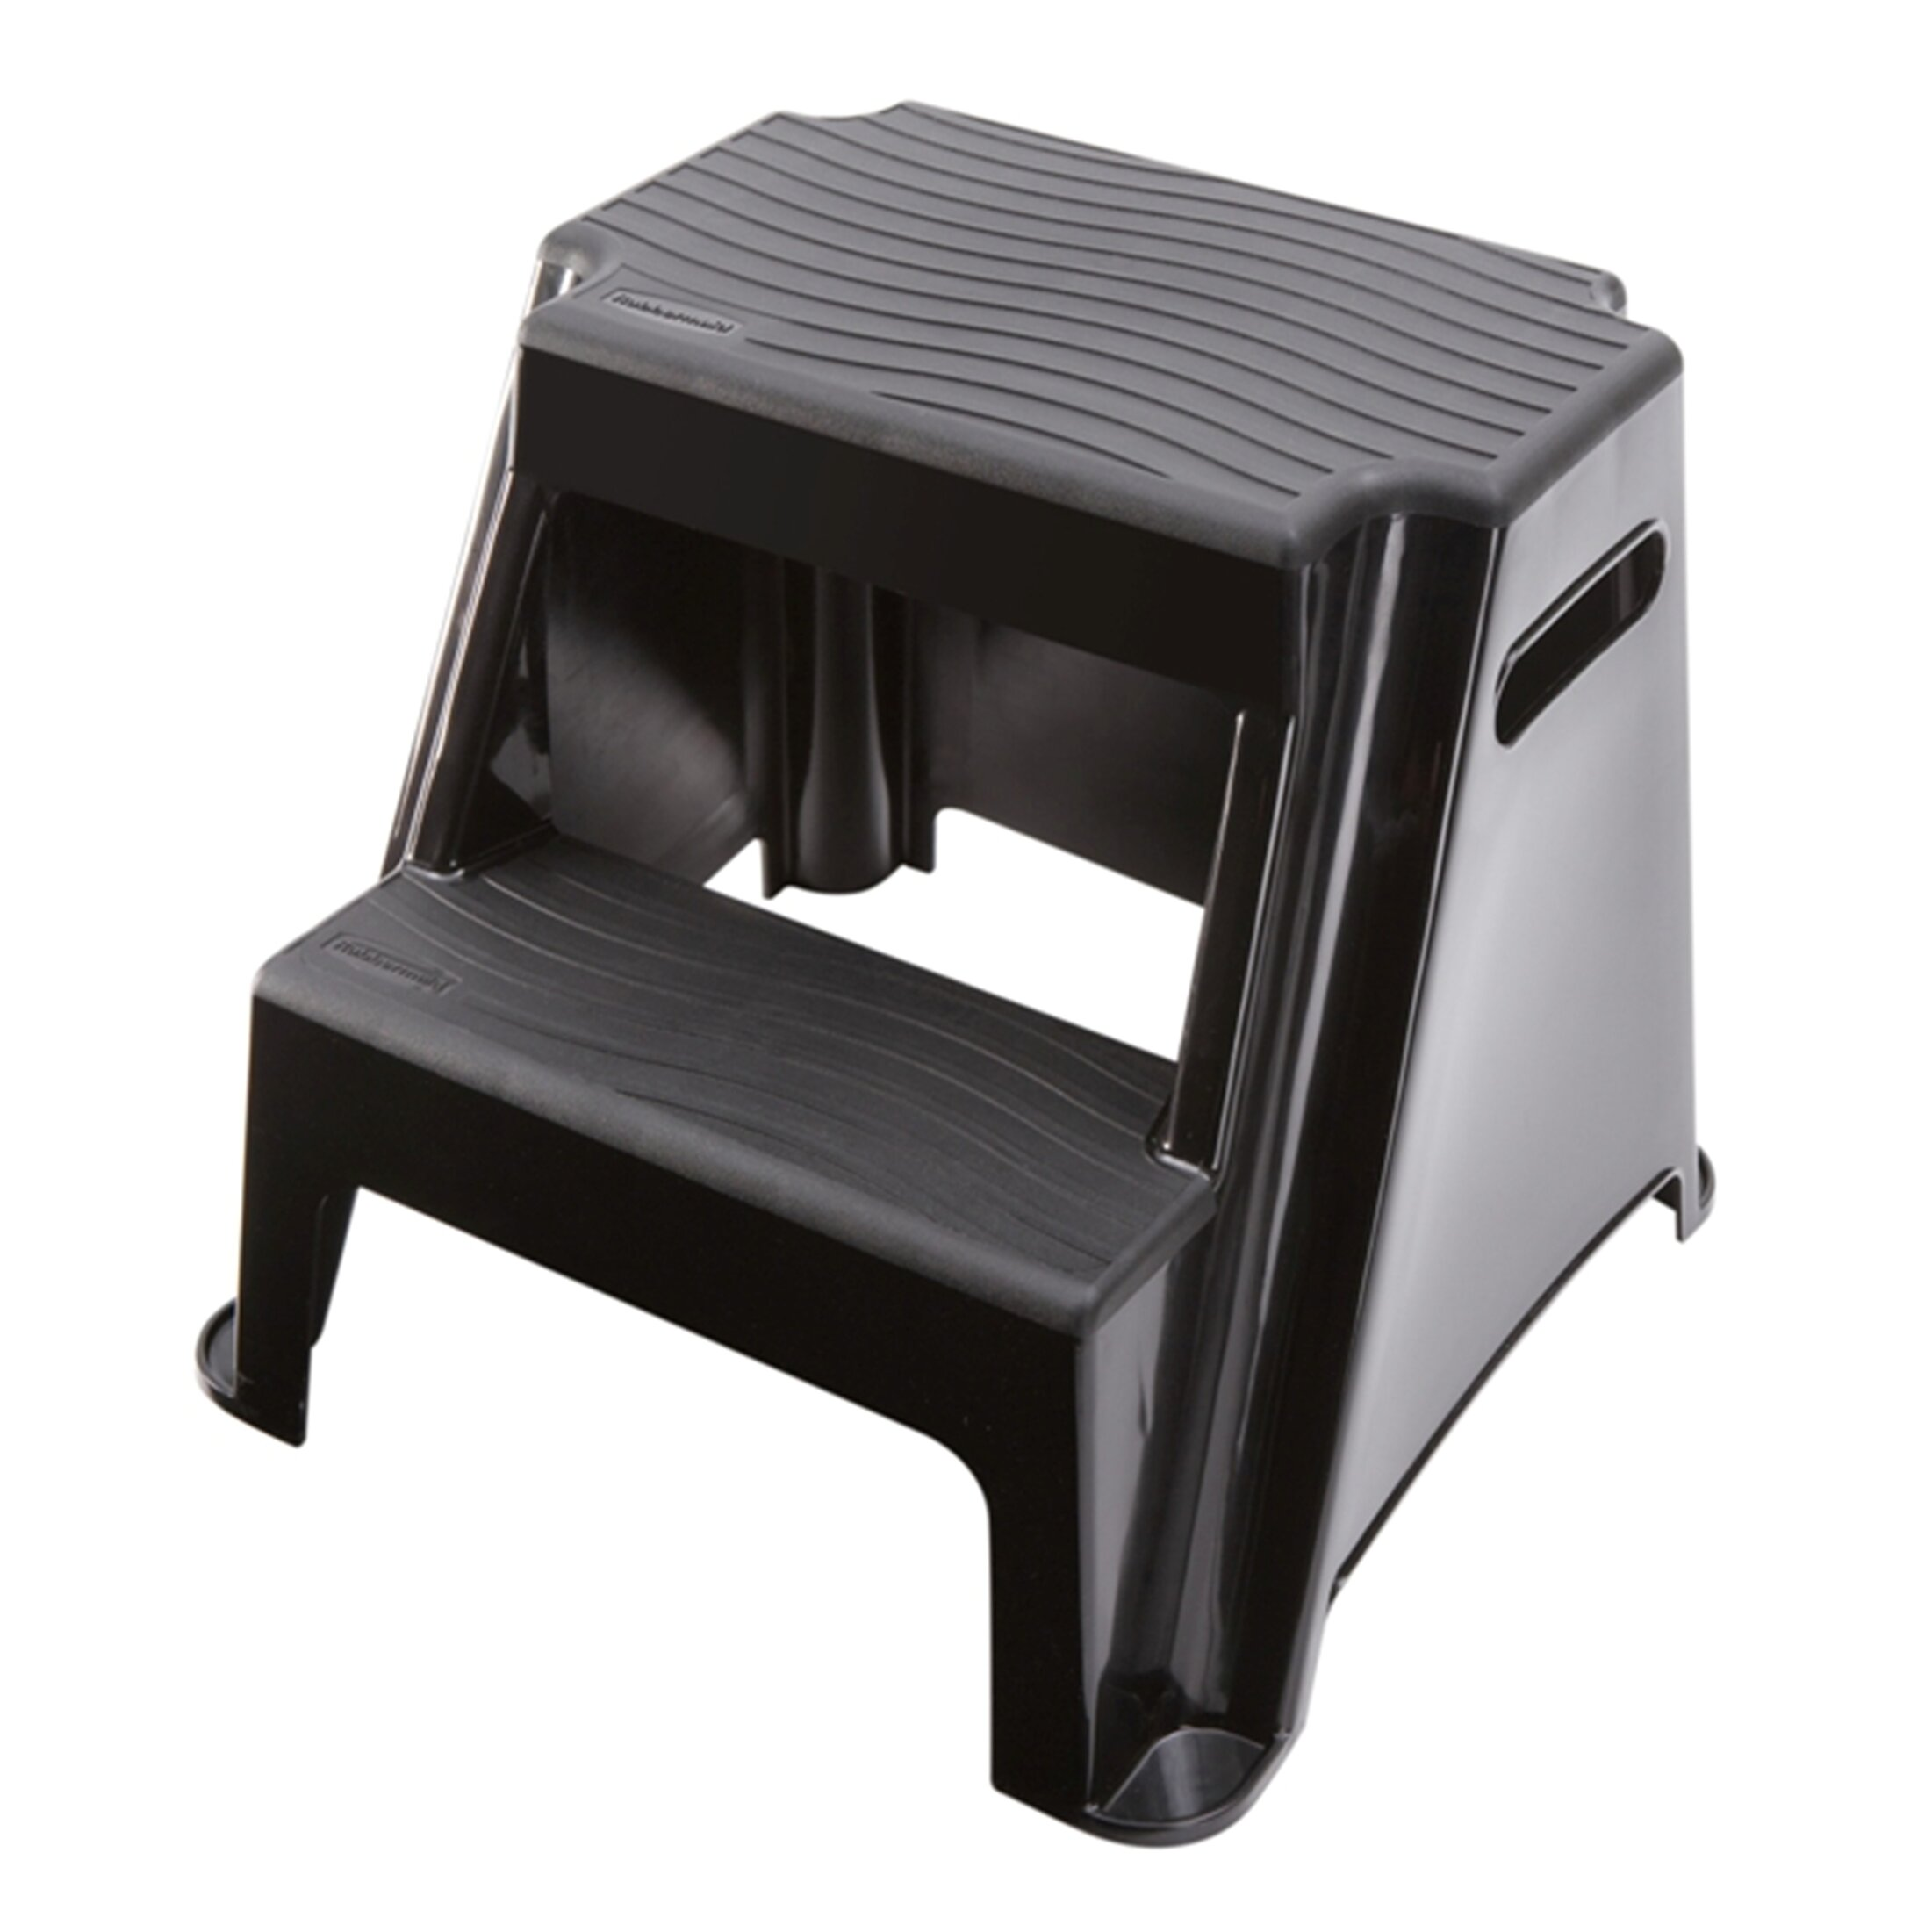 Rubbermaid 2 Step Plastic Molded Step Stool With 300 Lb